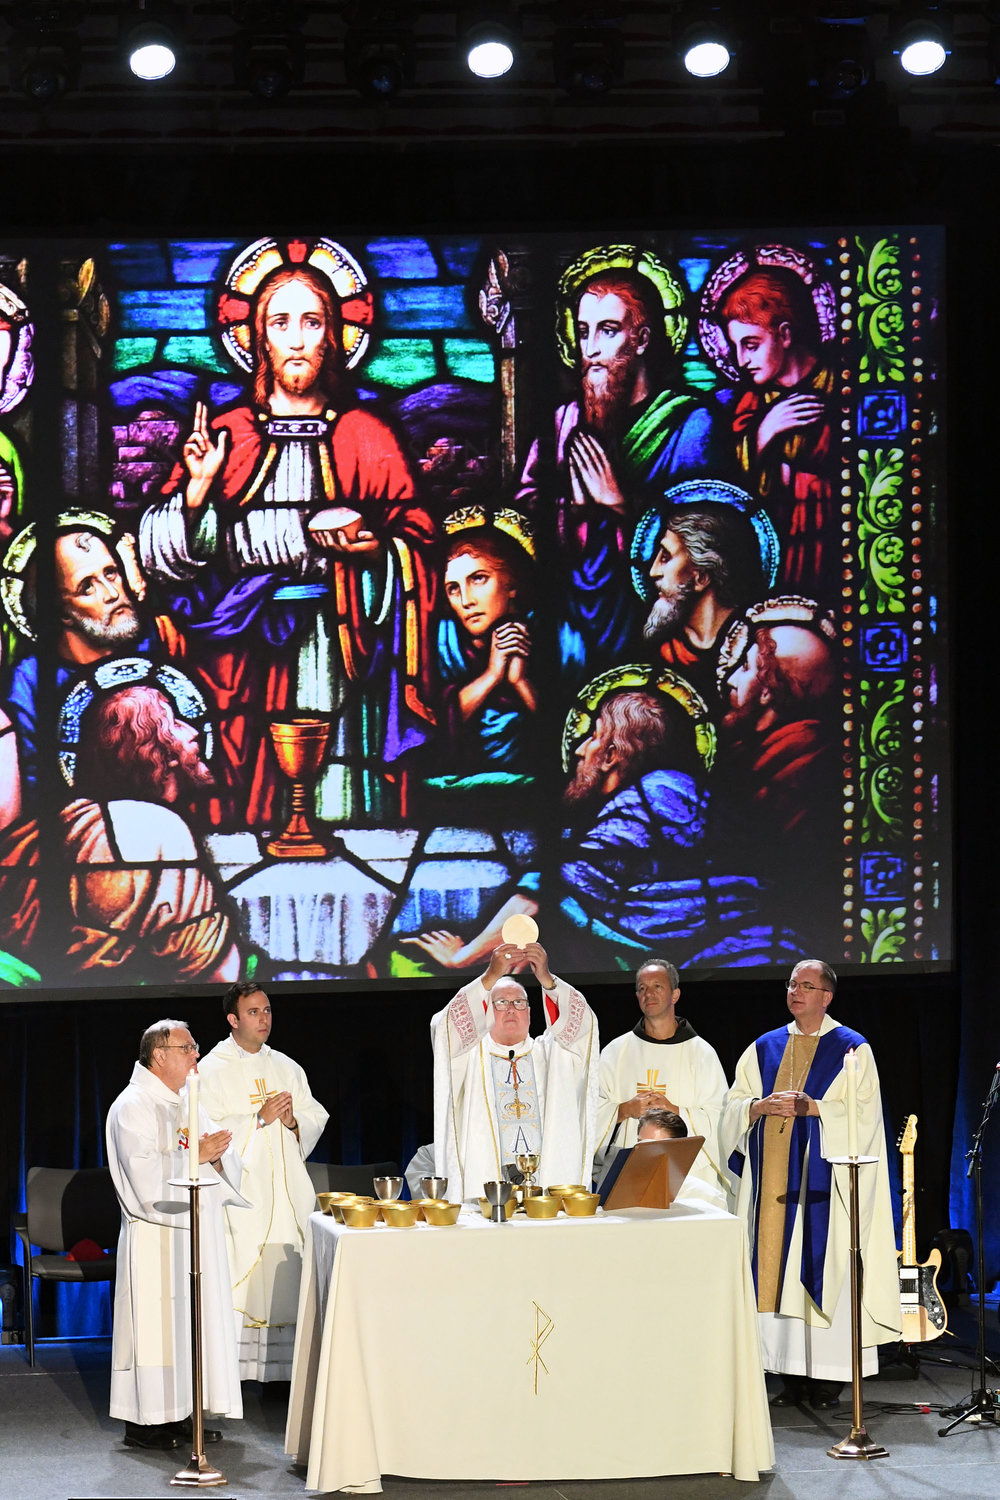 Cardinal Dolan elevates the Eucharist during the Mass he offered July 20 at Steubenville NYC at St. John's University in Queens.